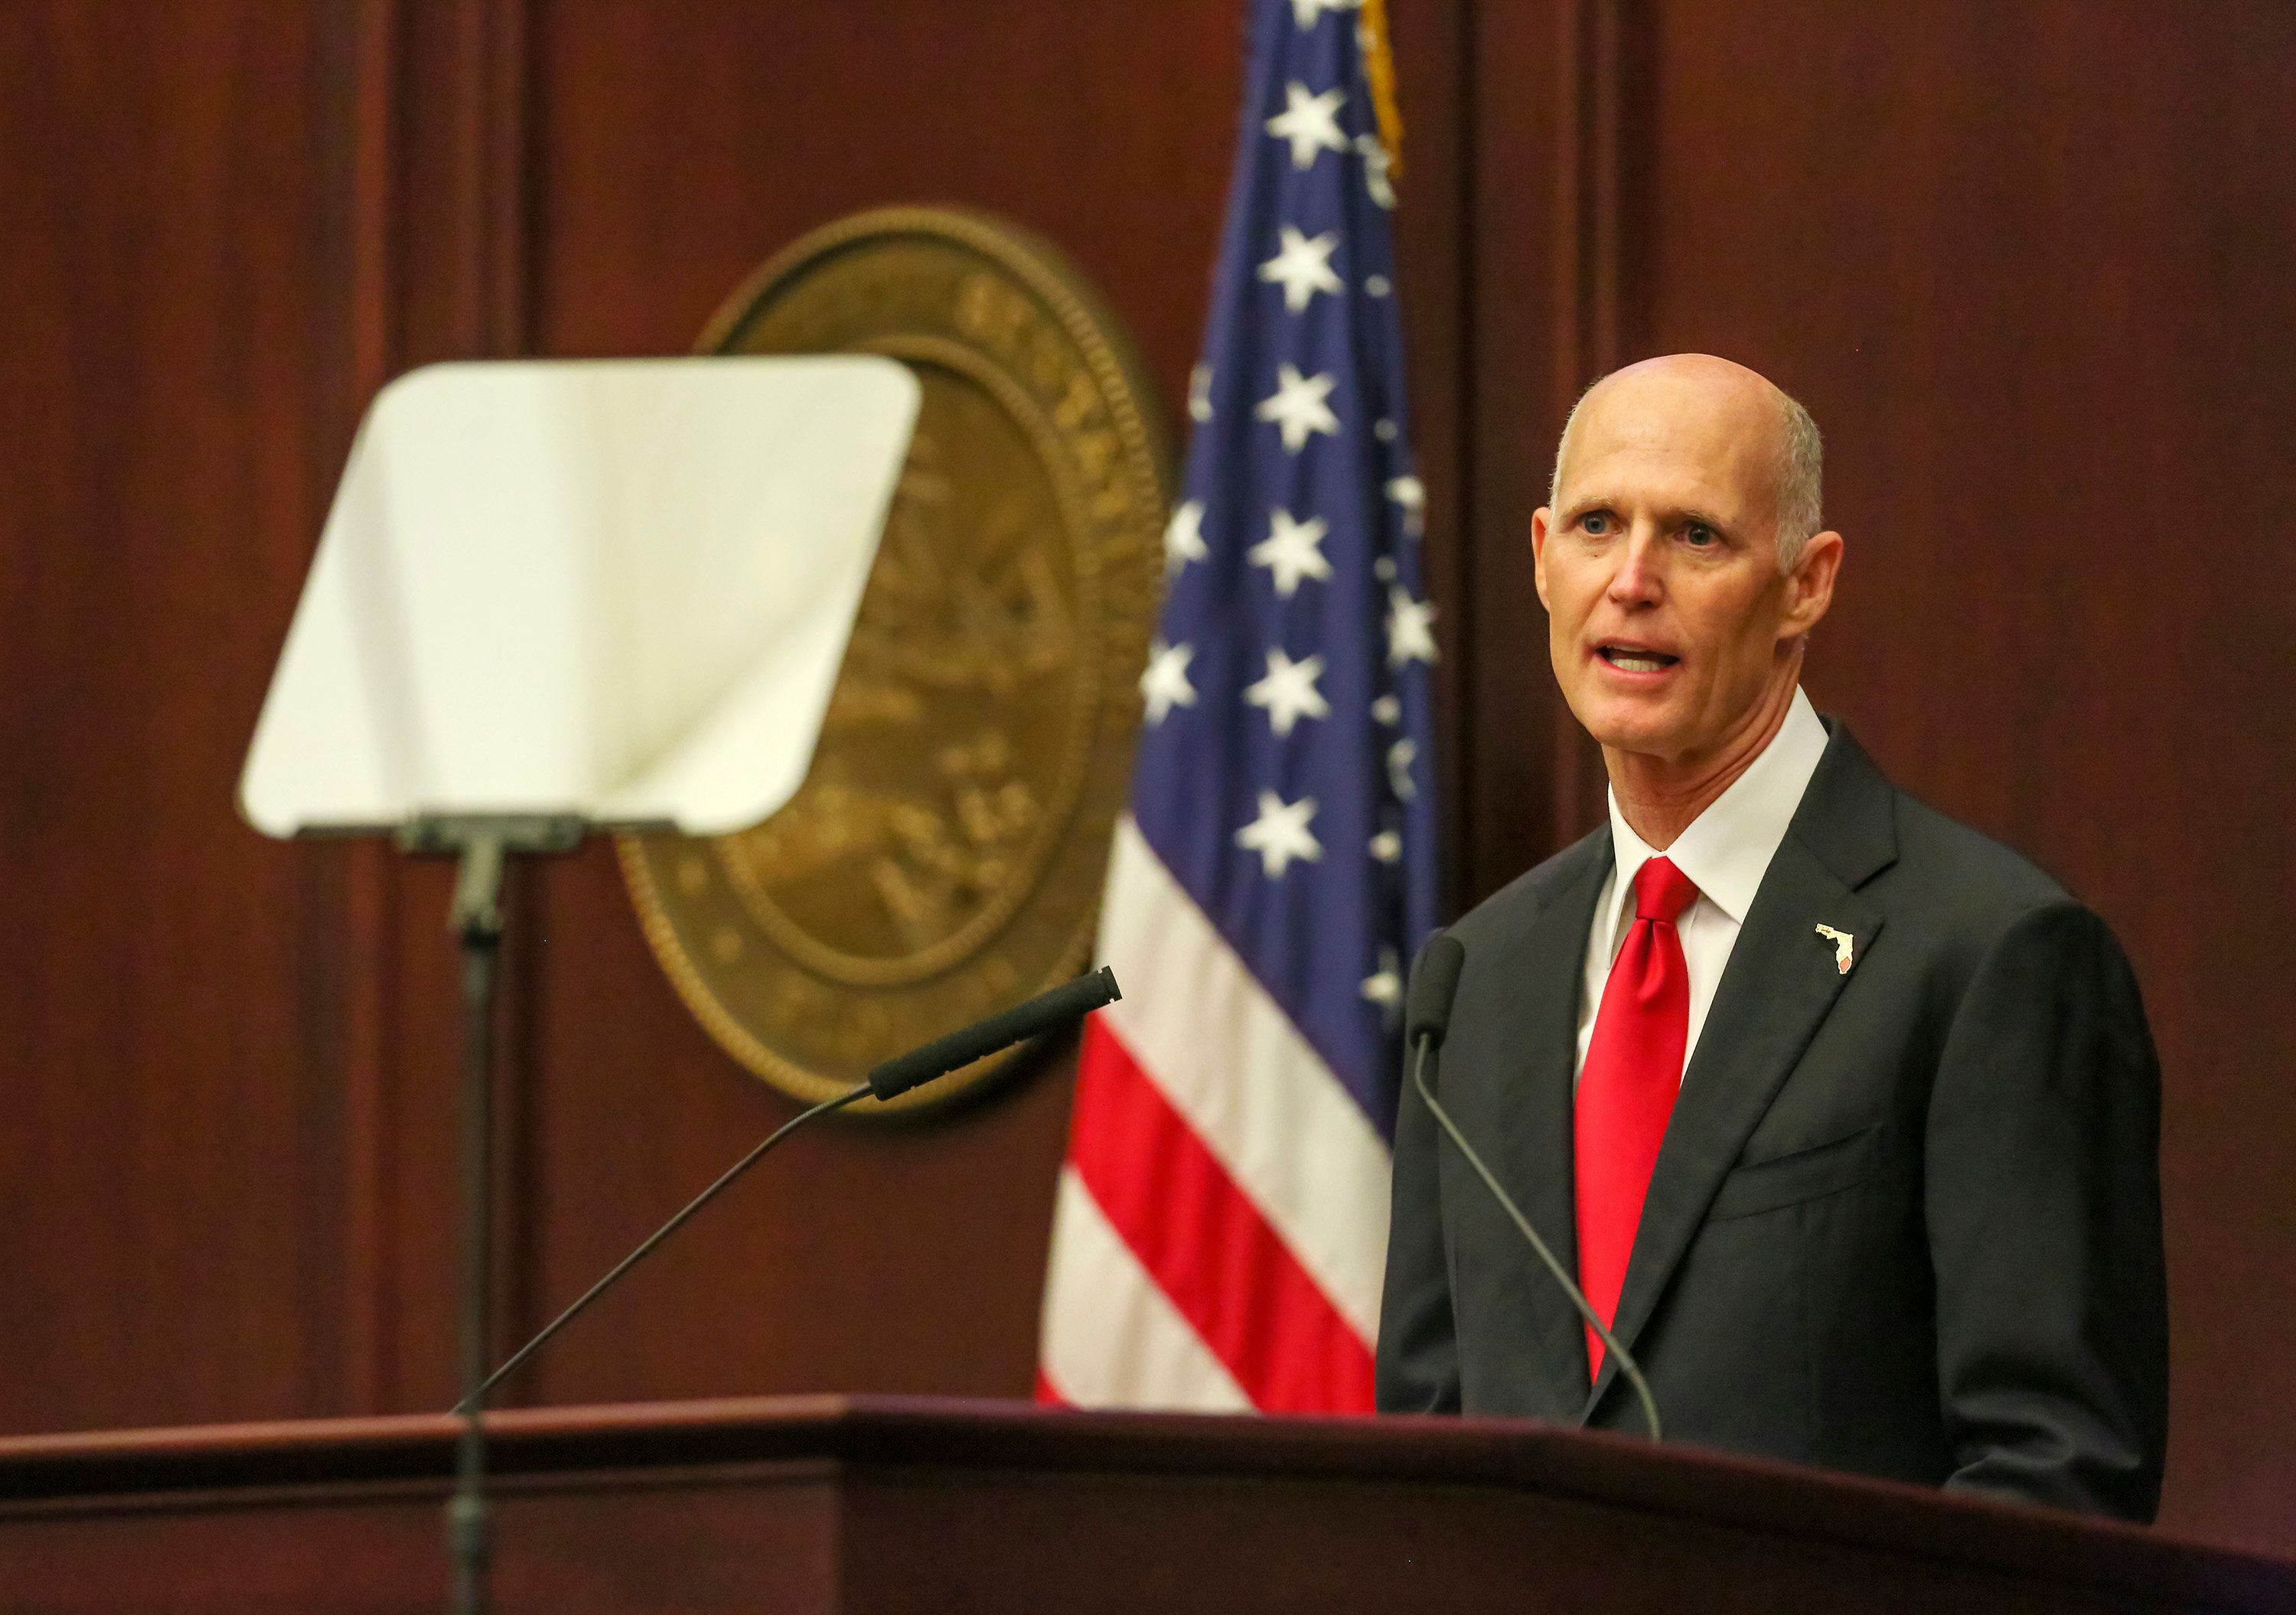 Florida Governor Rick Scott gives his State of the State speech in the Florida House of Representatives chamber during the opening of the 2017 Florida Legislative Session on Tuesday, March 7, 2017 in Tallahassee, Fla. (Jacob Langston/Orlando Sentinel/TNS via Getty Images)